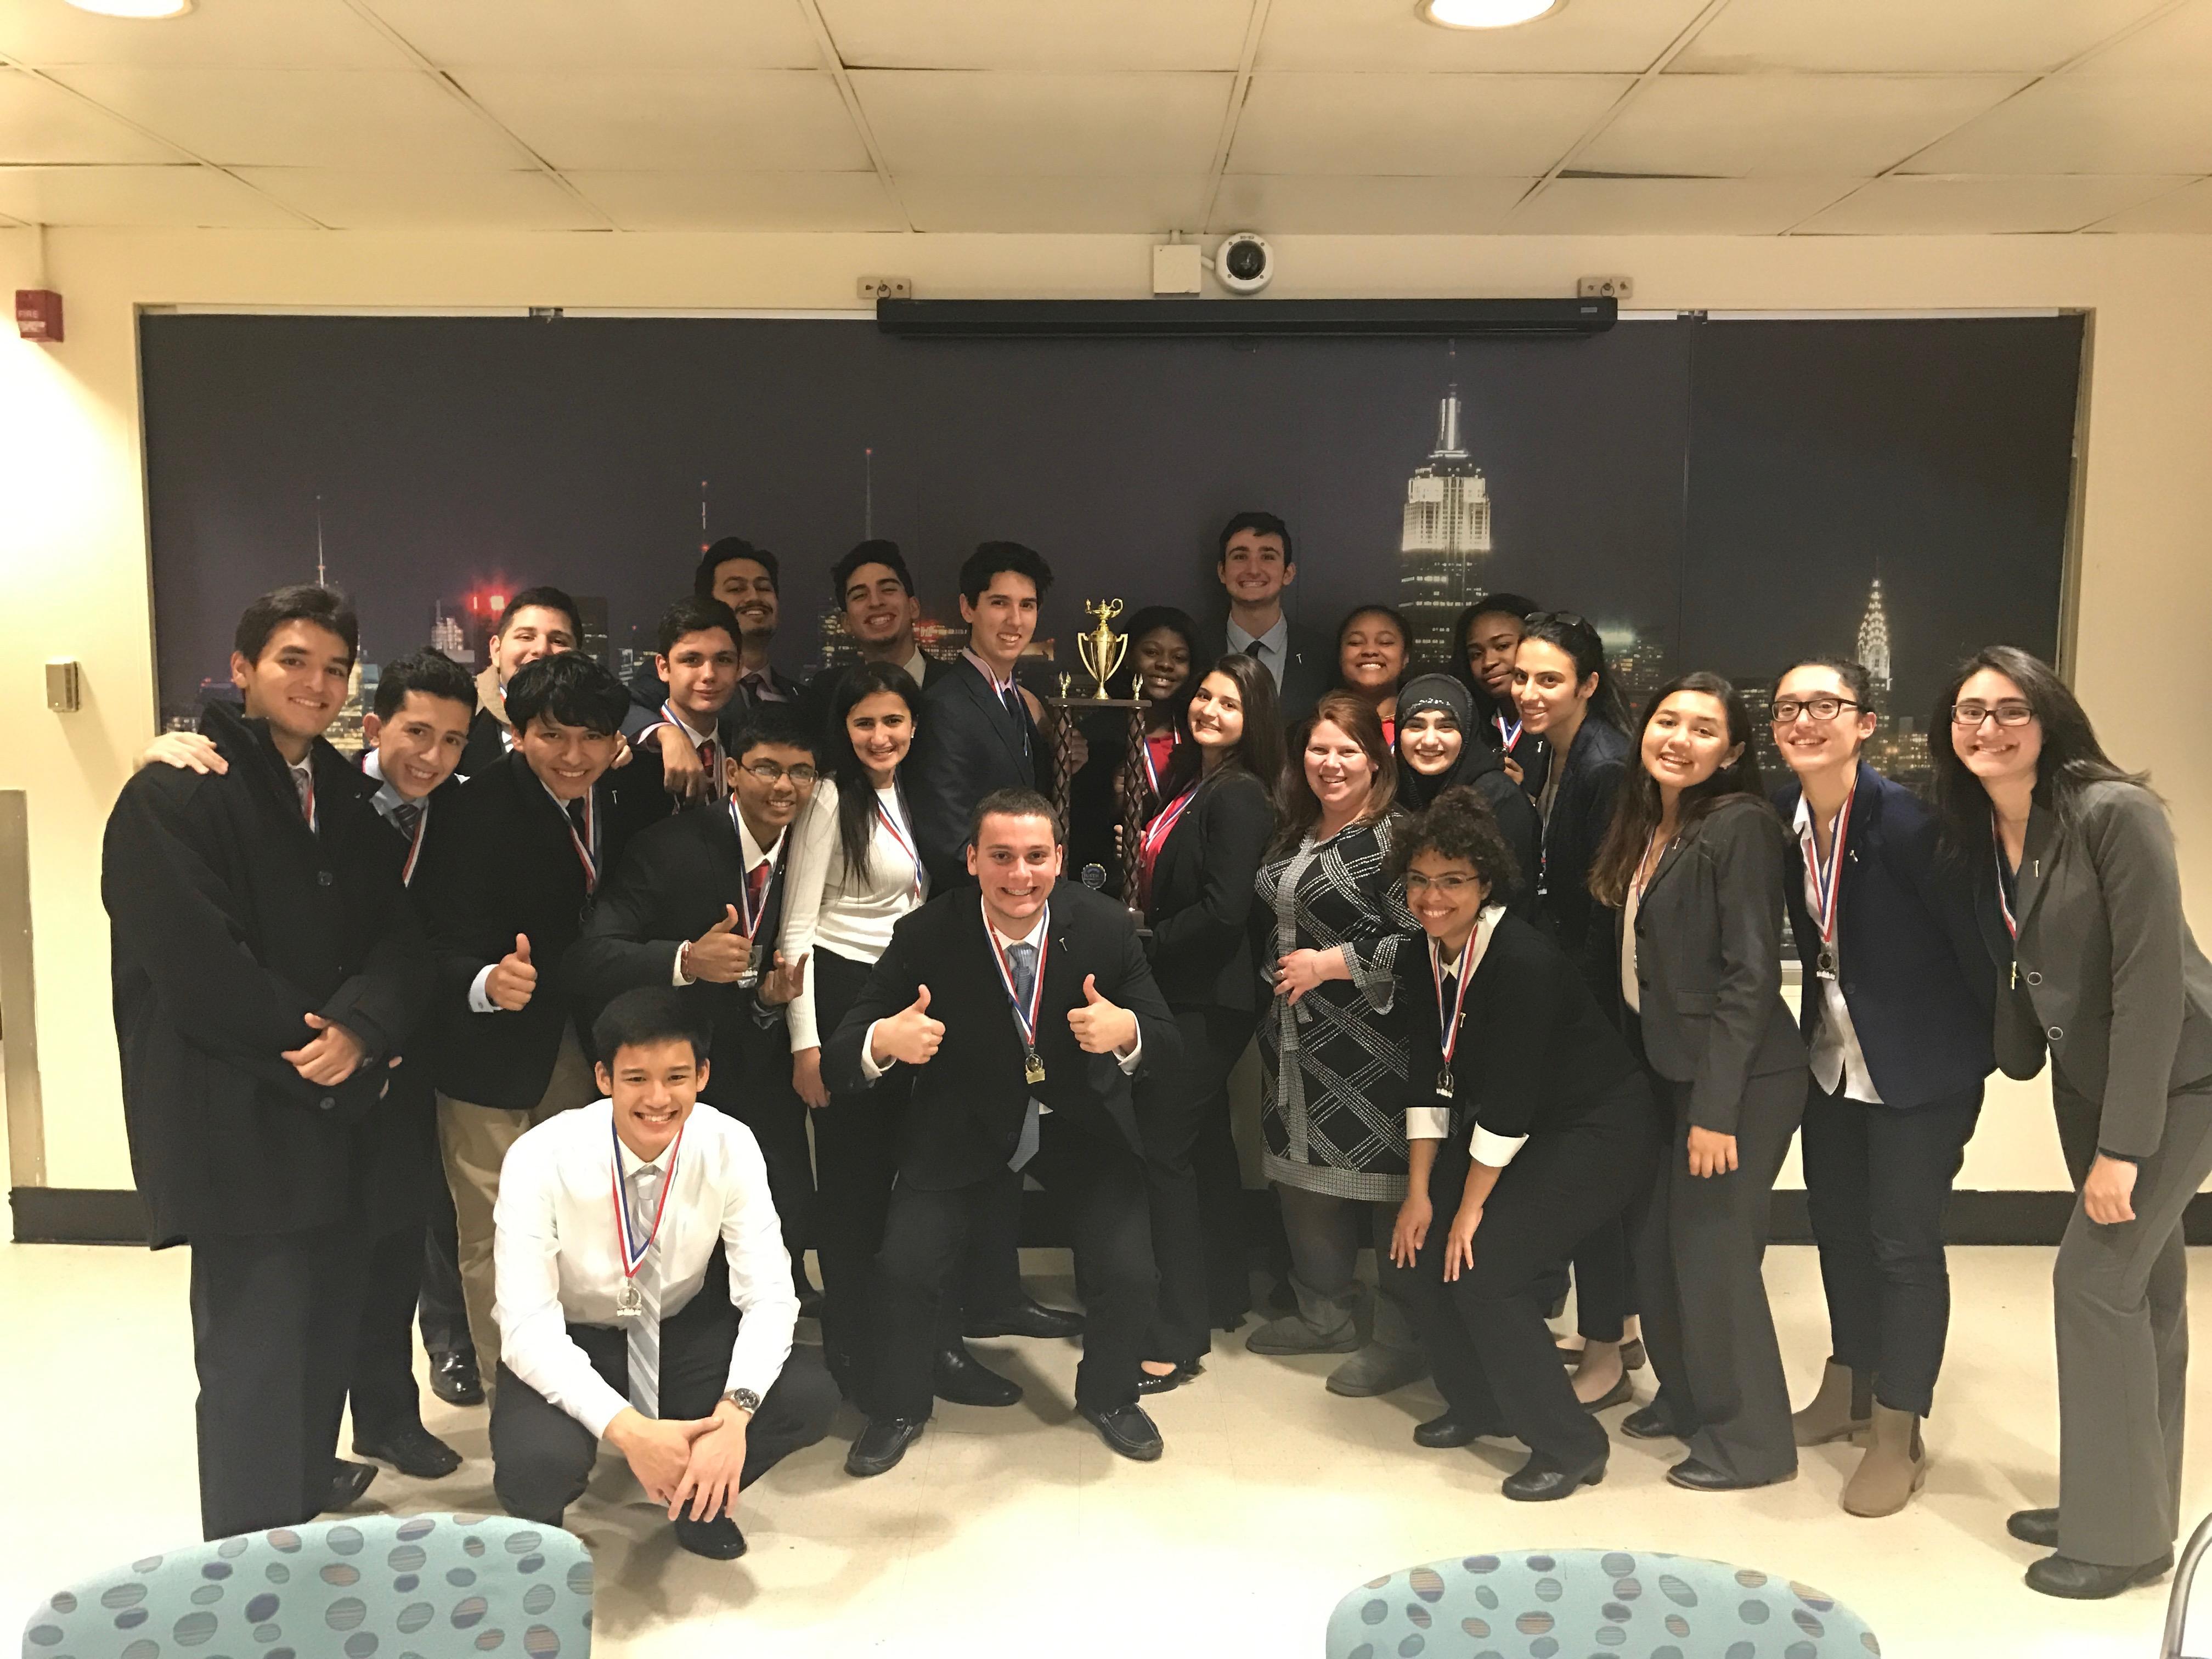 "<a href=""http://jrcnyc.org/site/2017/01/12/forest-hills-high-school-wins-we-the-people-city-competition/"">Forest Hills High School Wins ""We the People"" City Competition</a>"